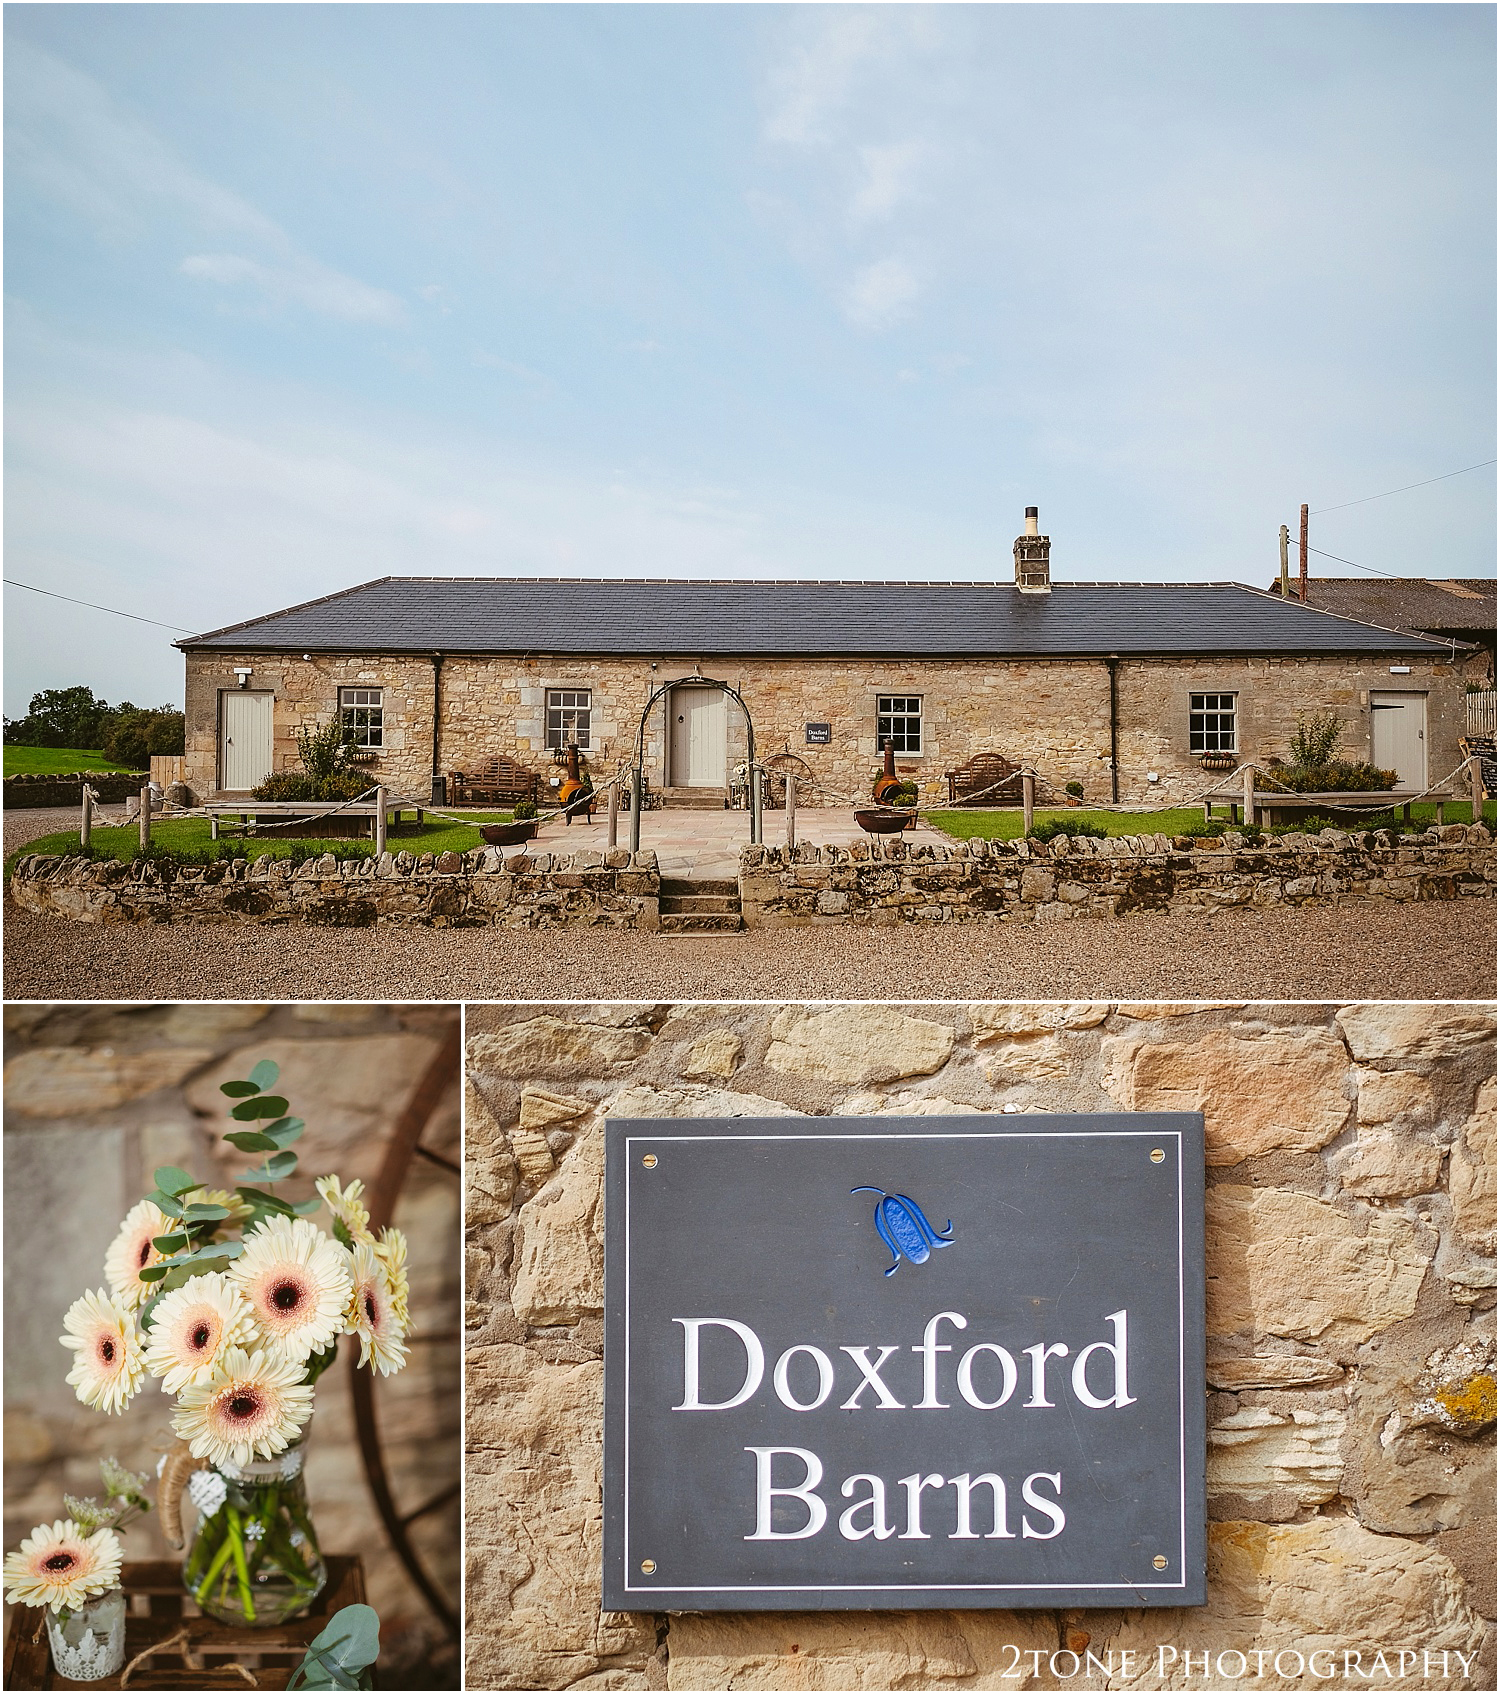 Doxford barns wedding photographer 001.jpg